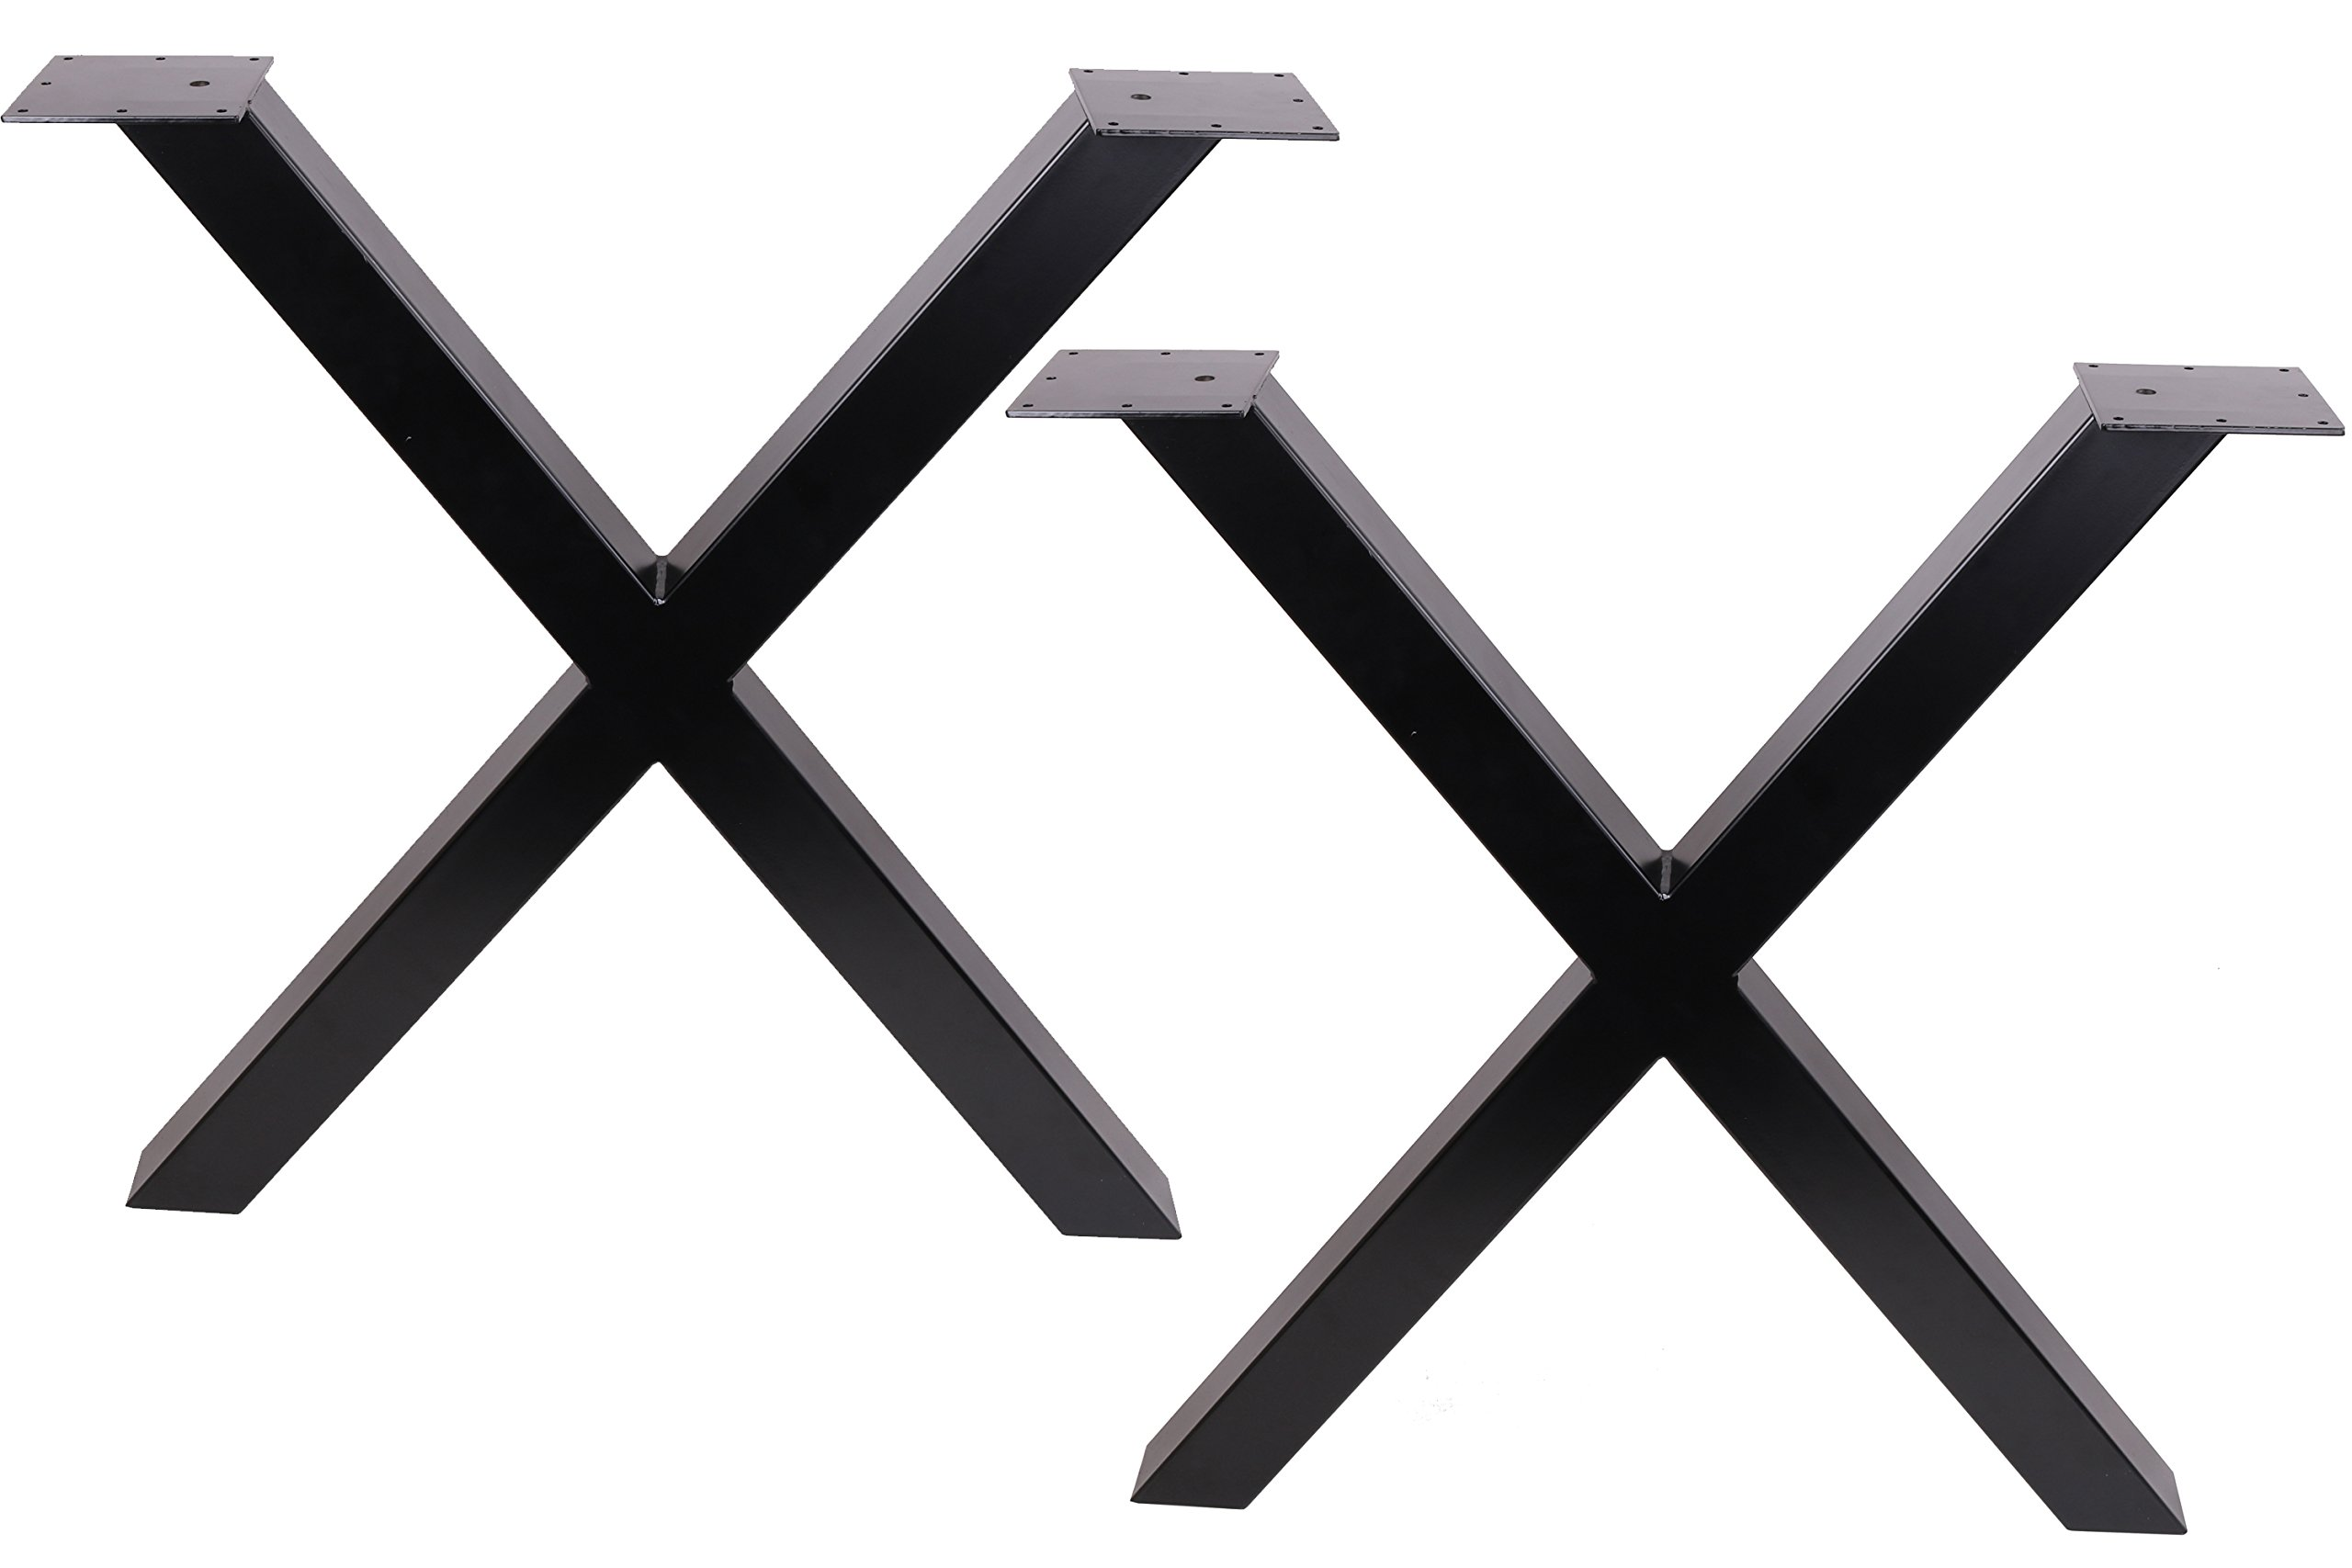 ECLV 28'' Dining Table Legs, X-shaped Steel table legs, Office Table Legs,Computer Desk Legs,Industrial kitchen table legs,Set of 2,Black by TOP PURE (Image #1)